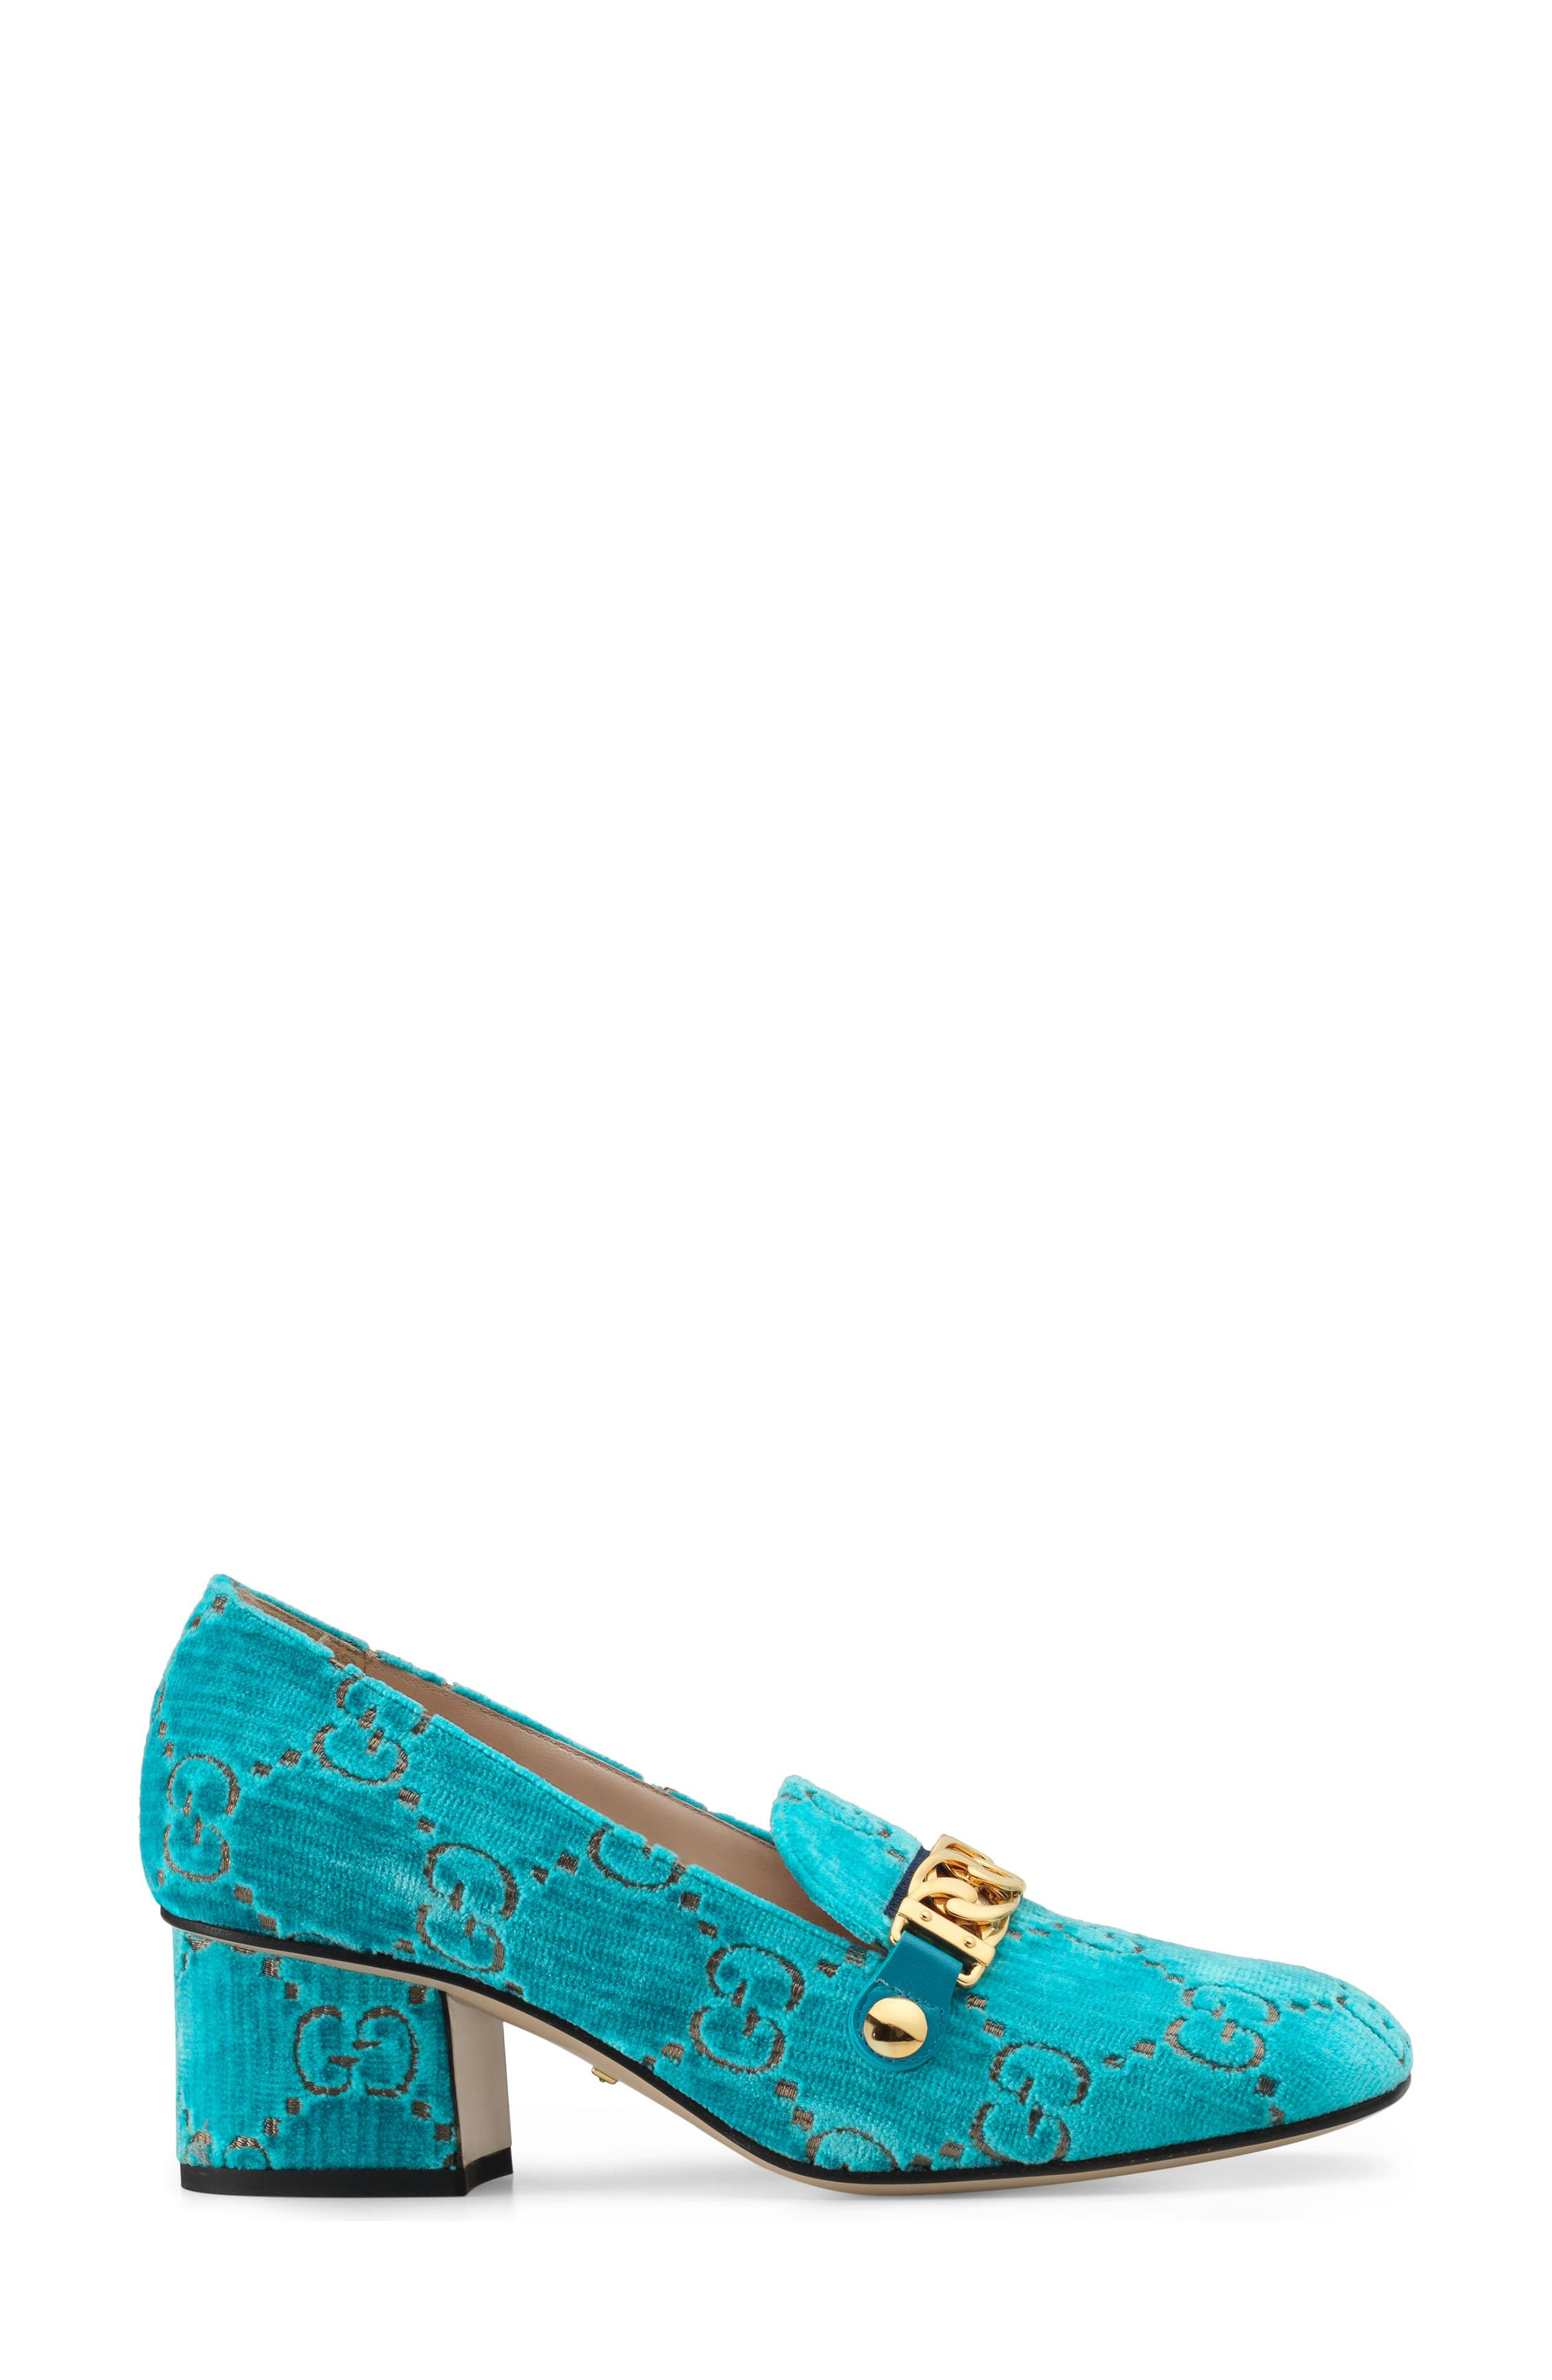 GUCCI,                             Sylvie Loafer Pump,                             Alternate thumbnail 3, color,                             TURQUOISE